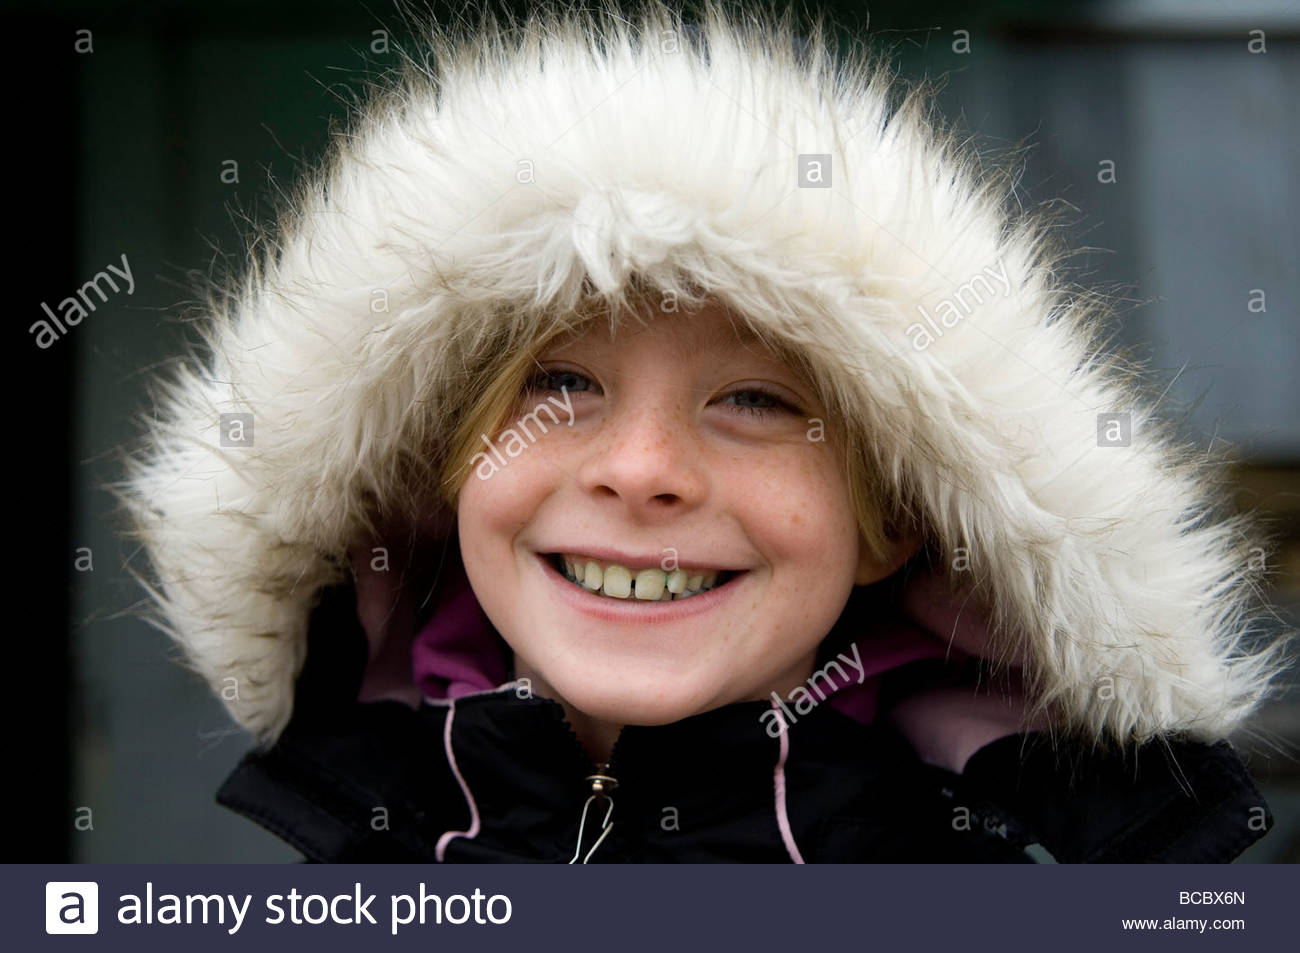 A young girl stands outside in a fur-trimmed coat. - Stock Image